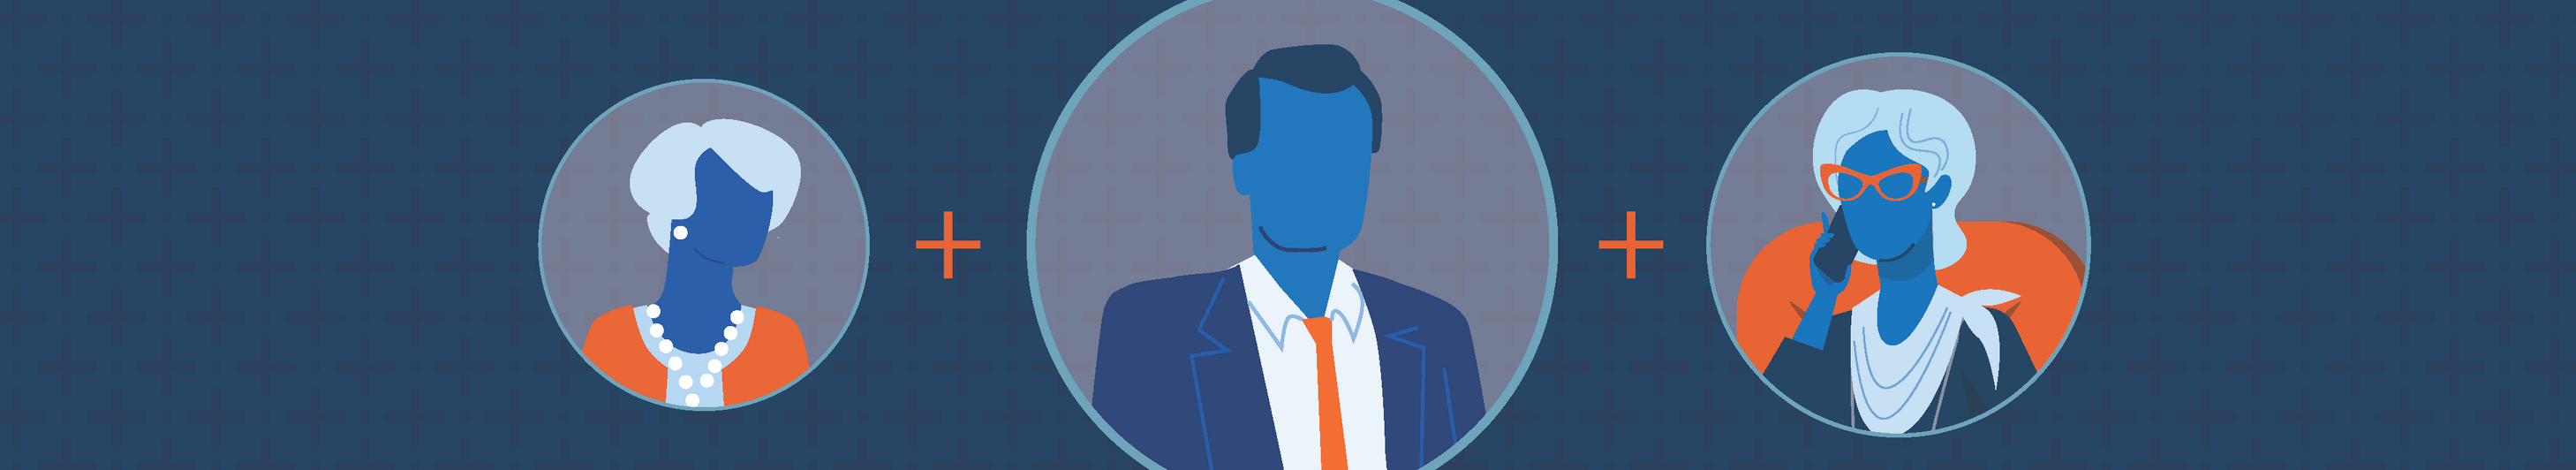 illustration of a financial professional